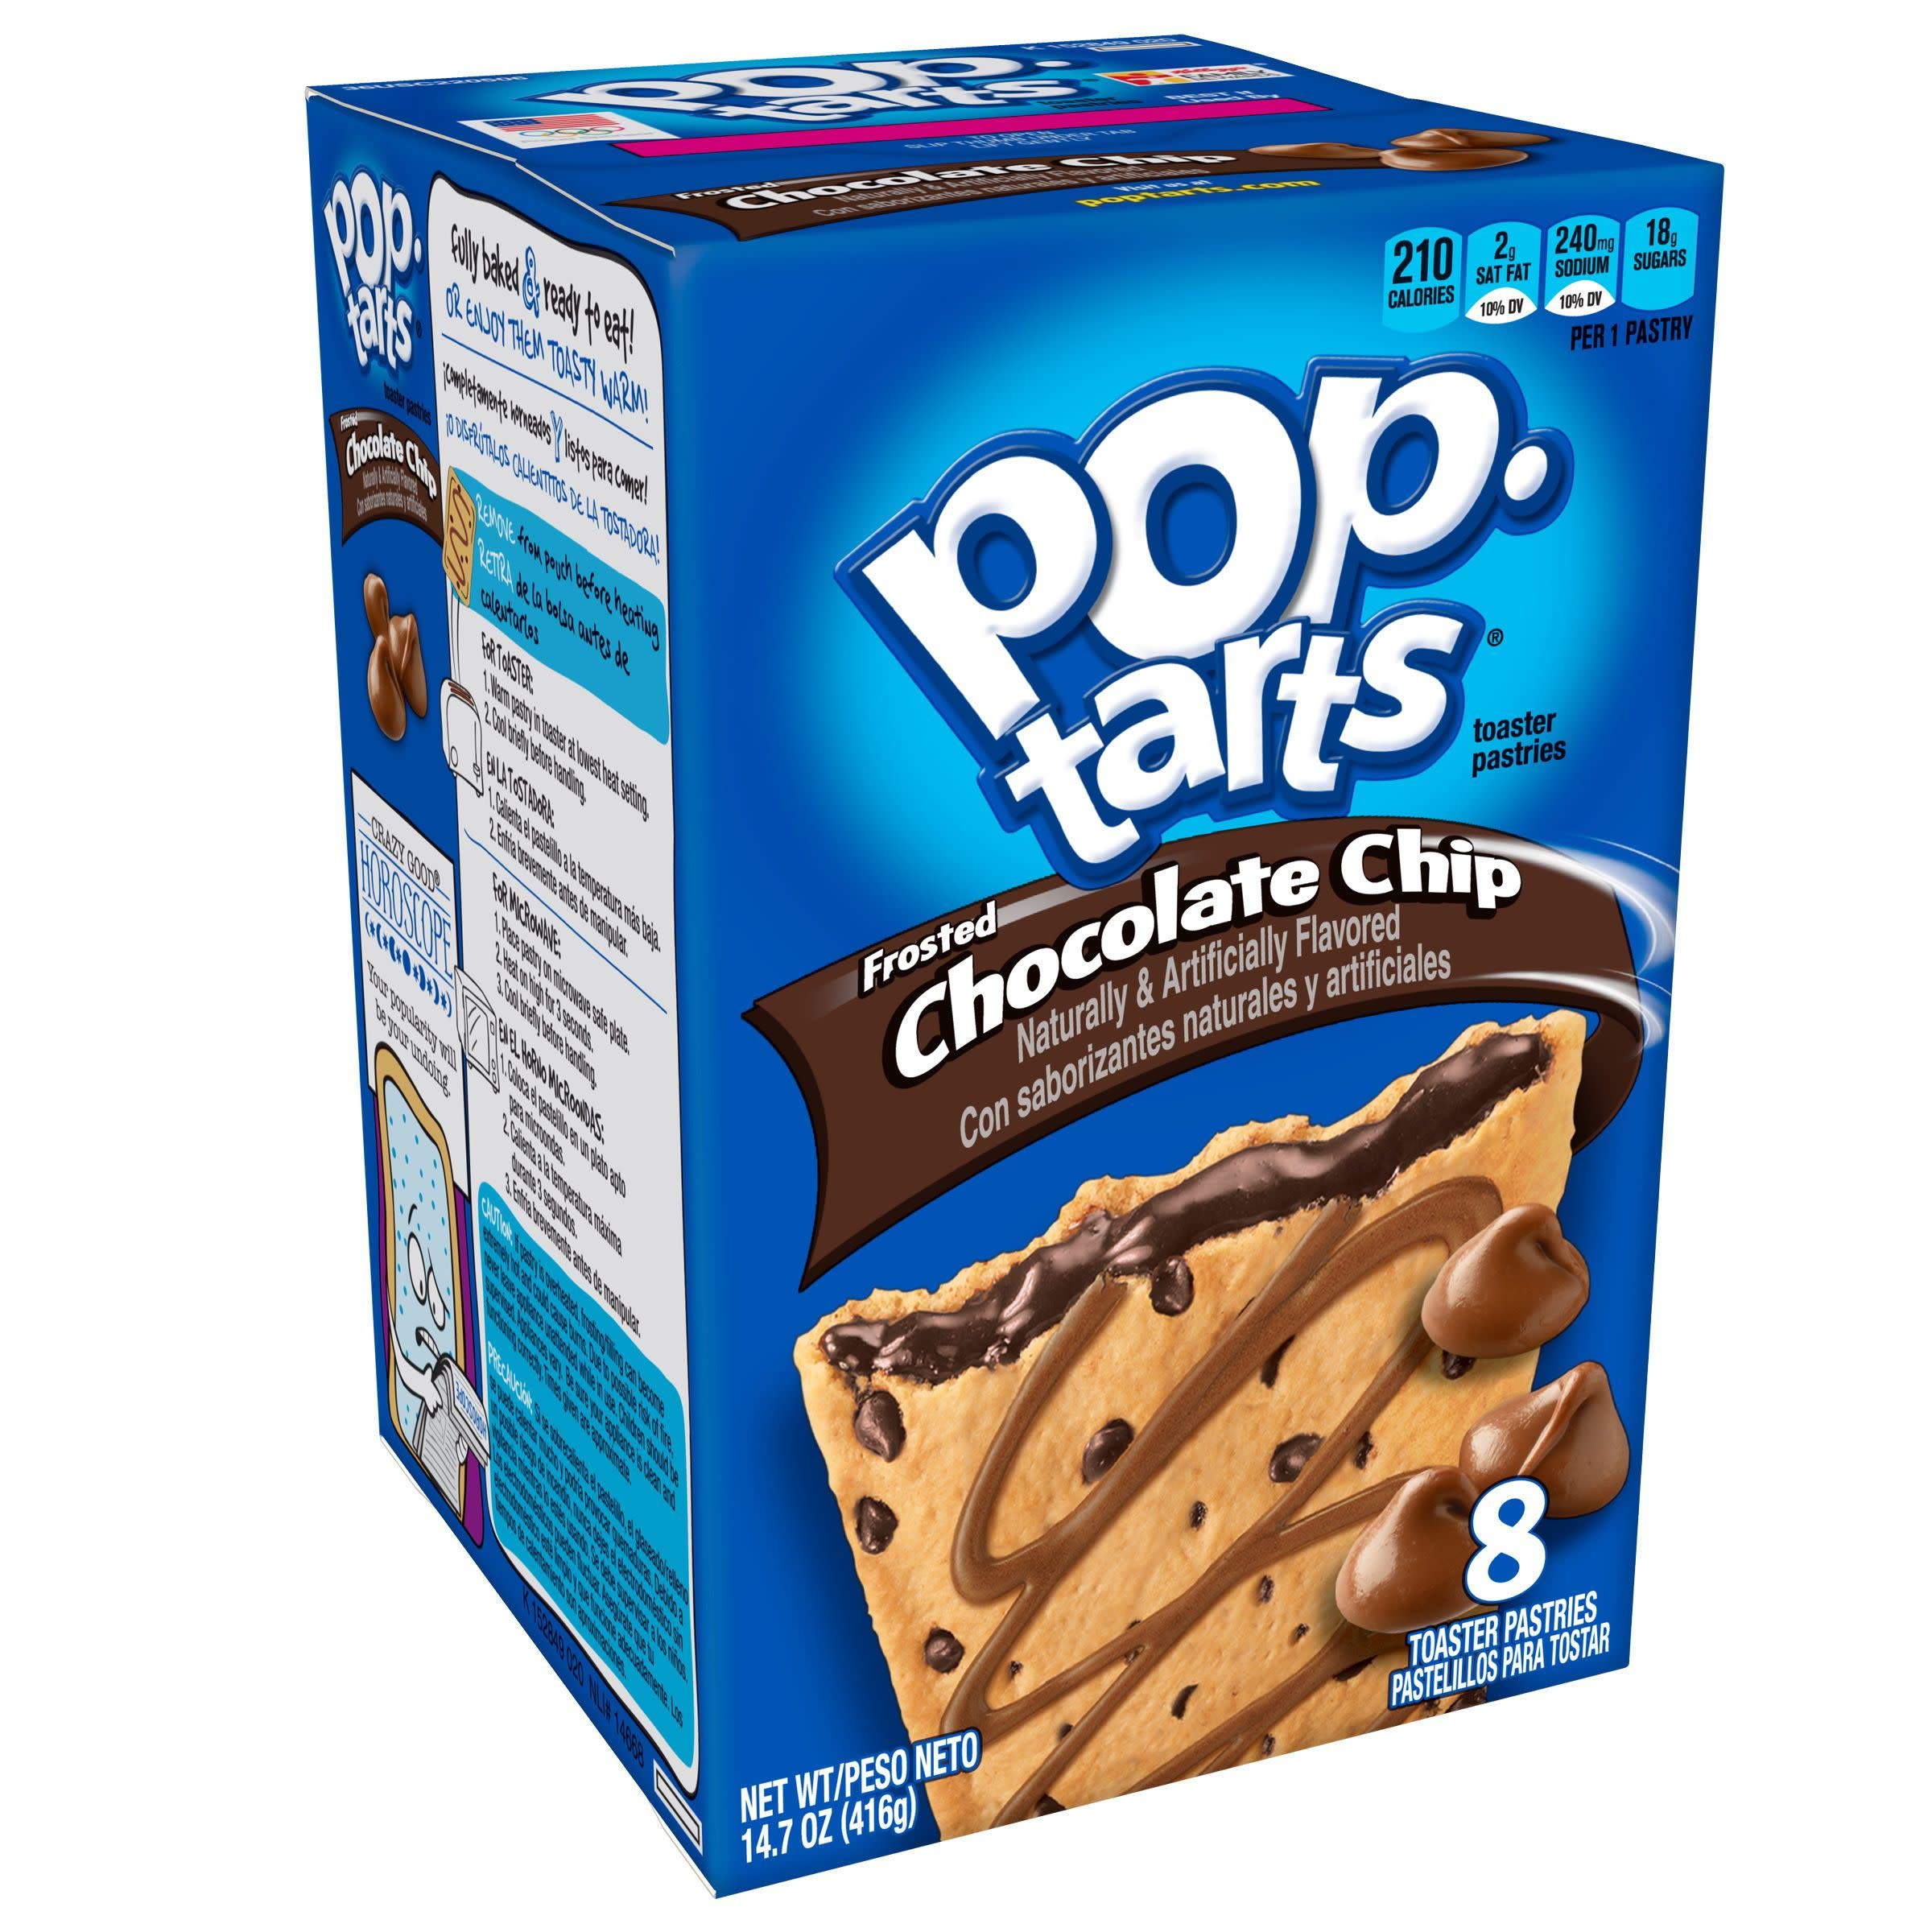 Pop-Tarts Breakfast Toaster Pastries, Frosted Chocolate Chip Flavored, Bulk Size, 96 Count (Pack of 12, 14.7 oz Boxes)